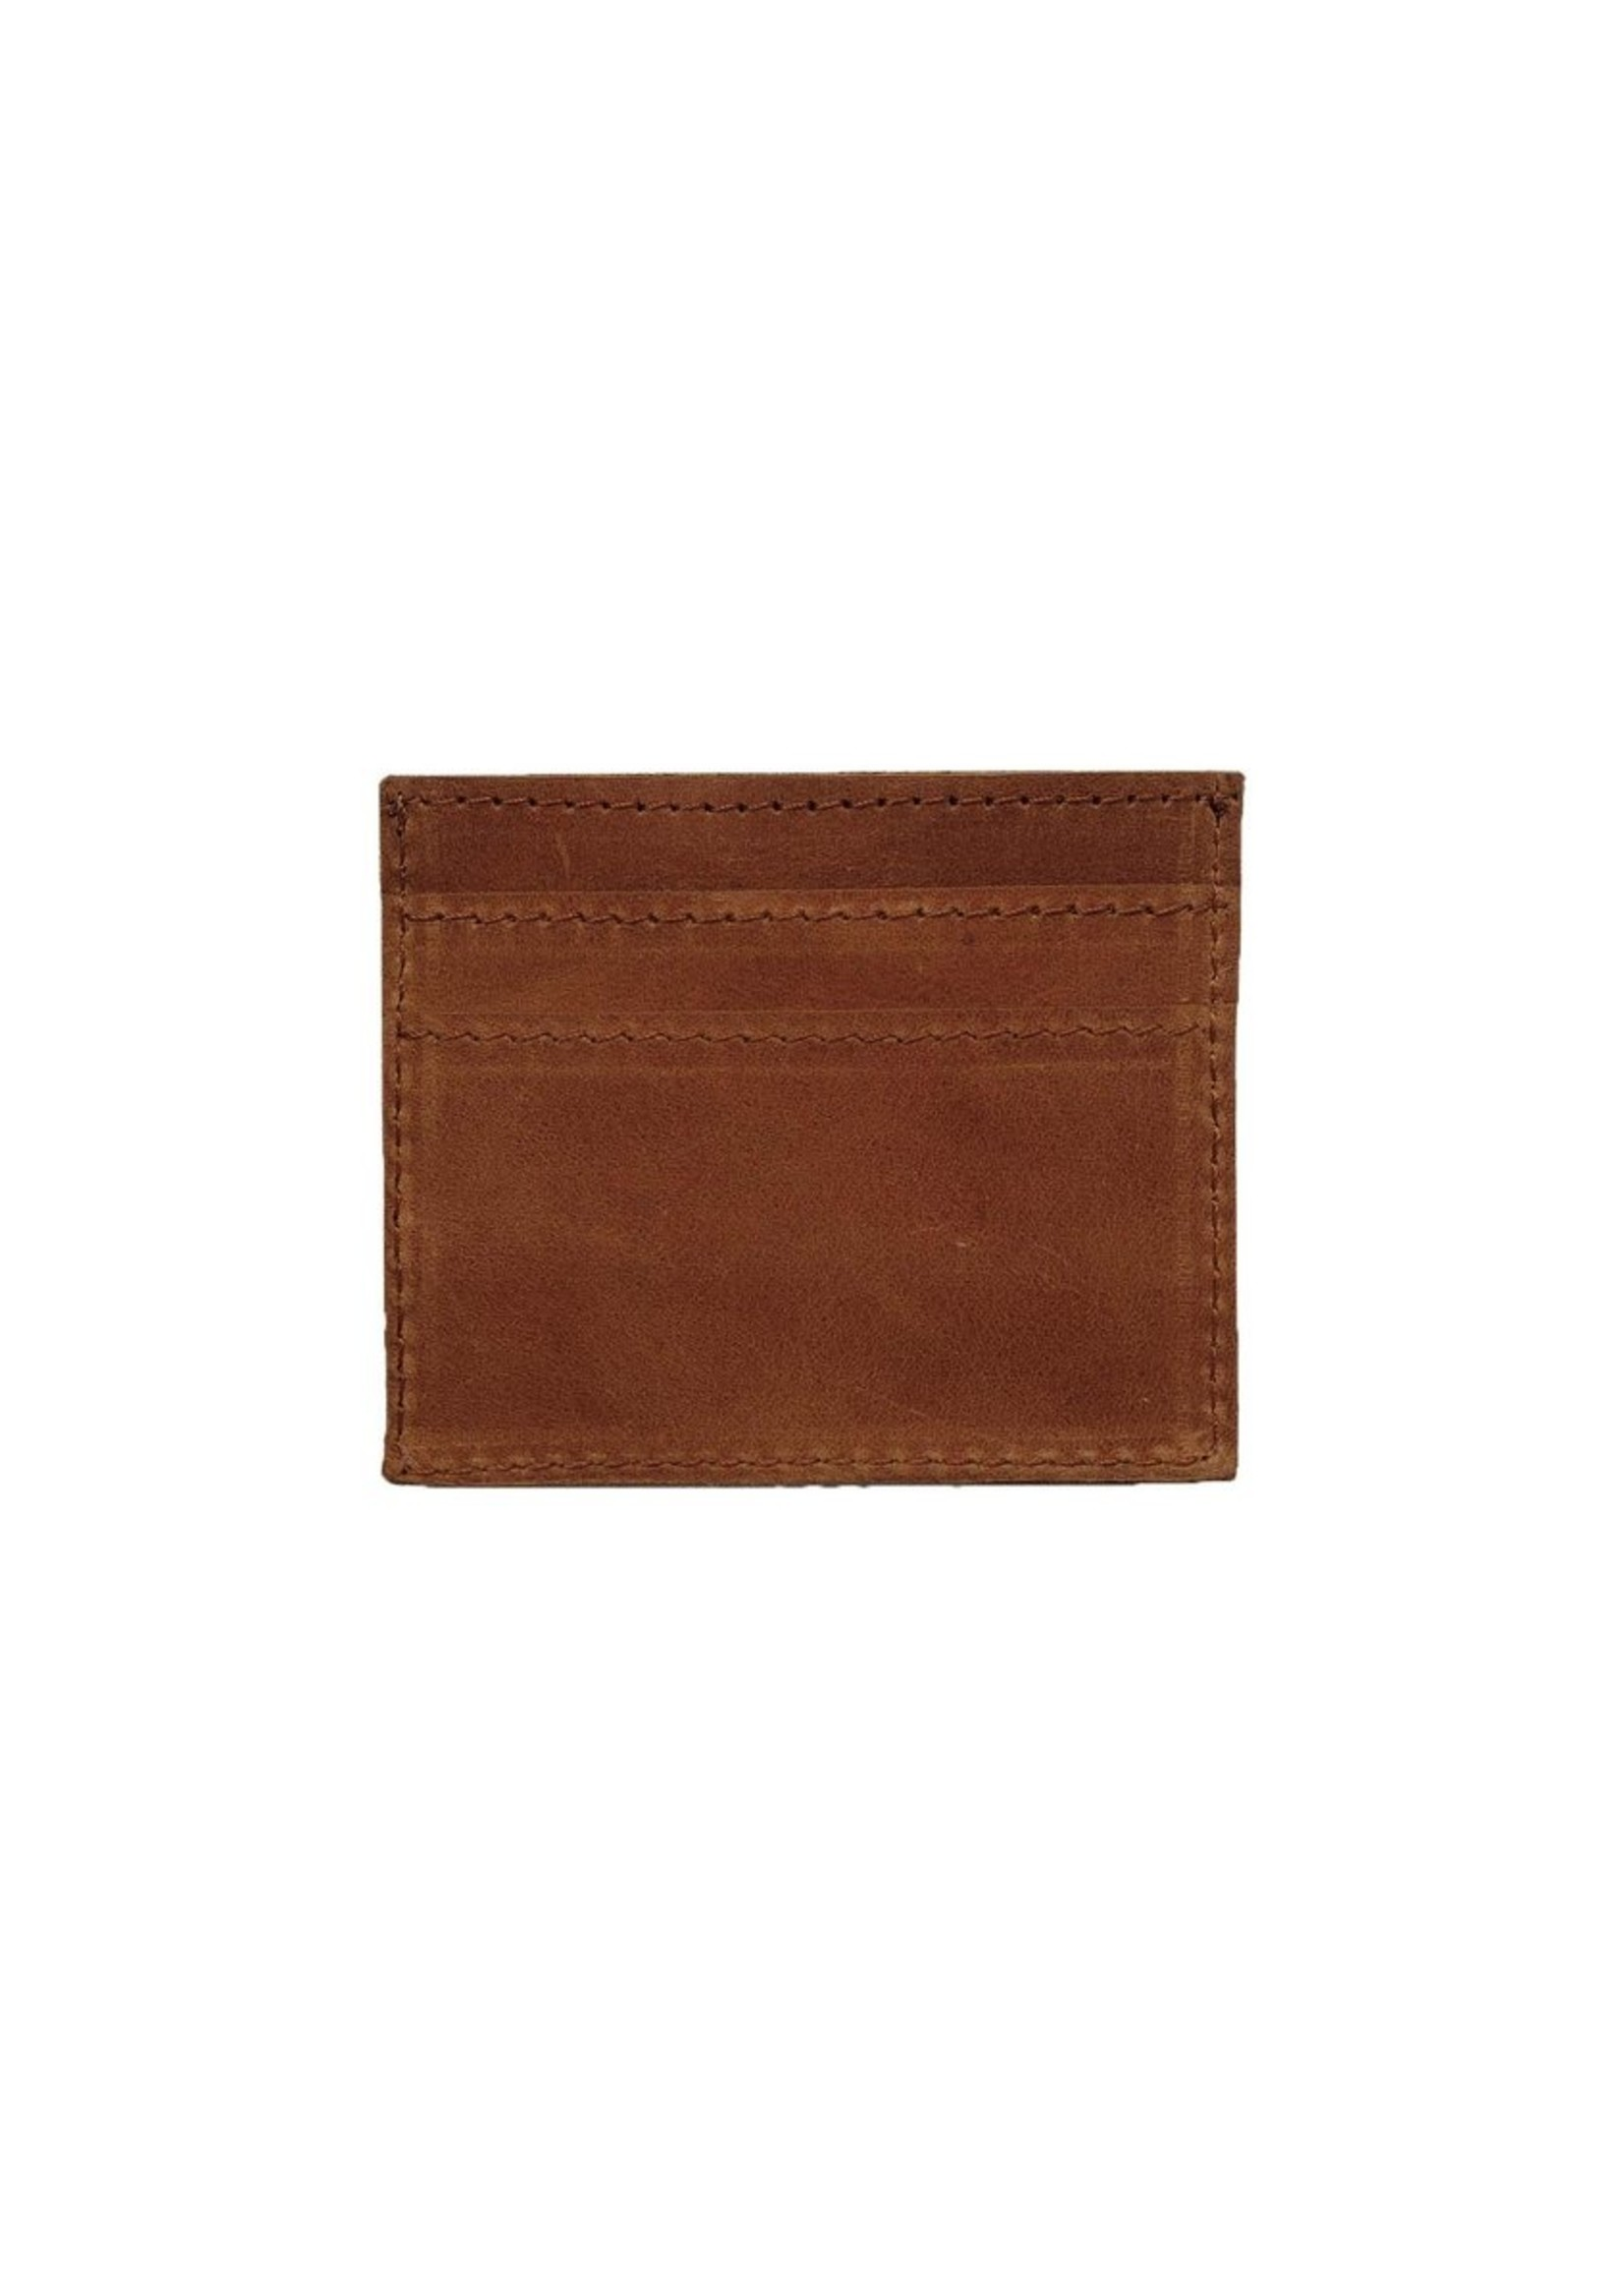 Able Leather Alem Leather Wallet